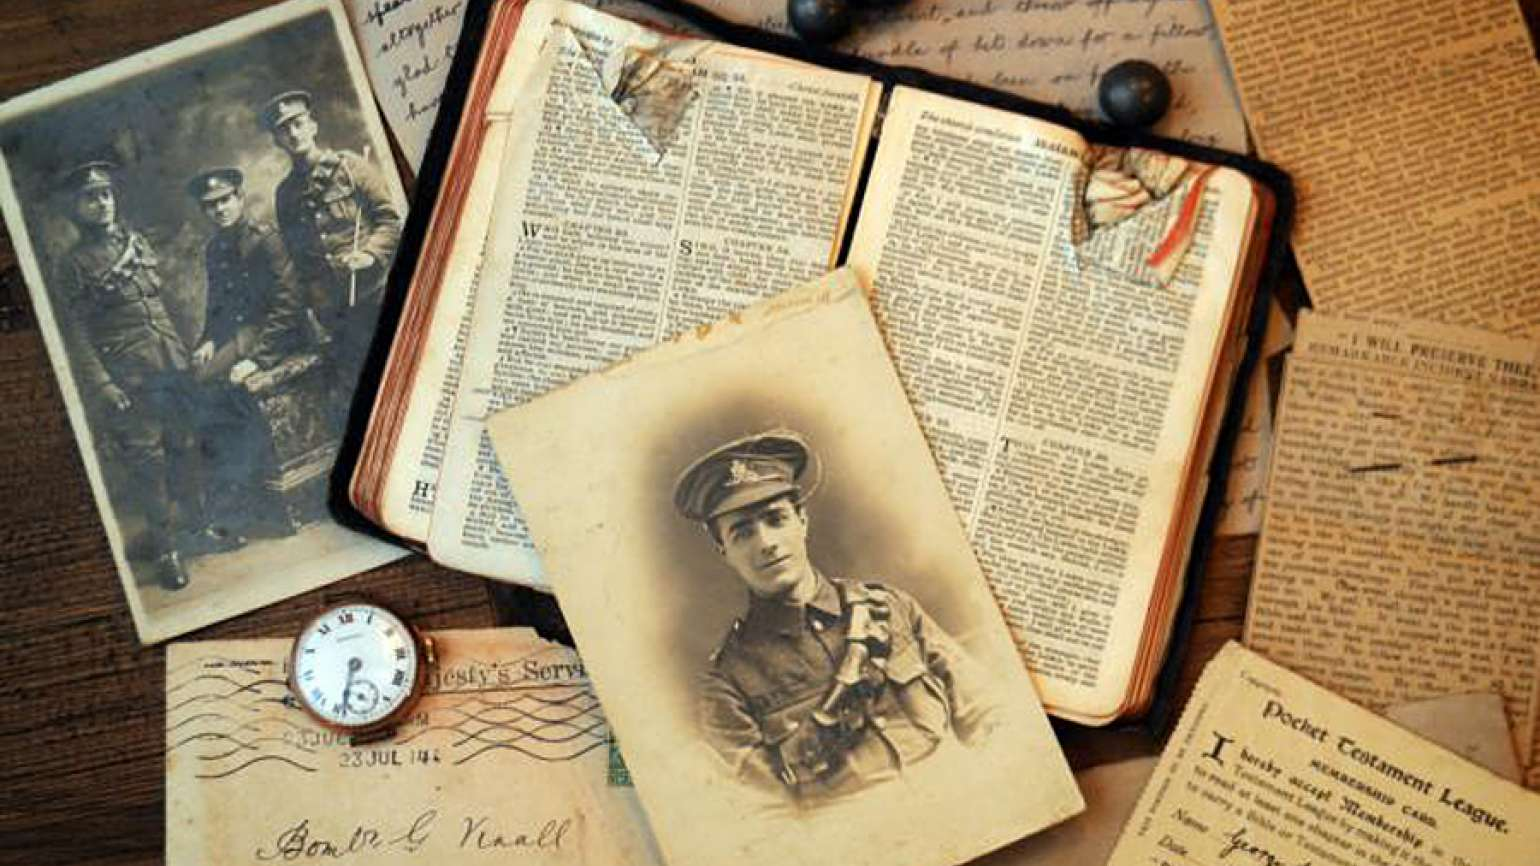 Guideposts: British bombardier George Vinall's battered Bible and three pieces of shrapnel